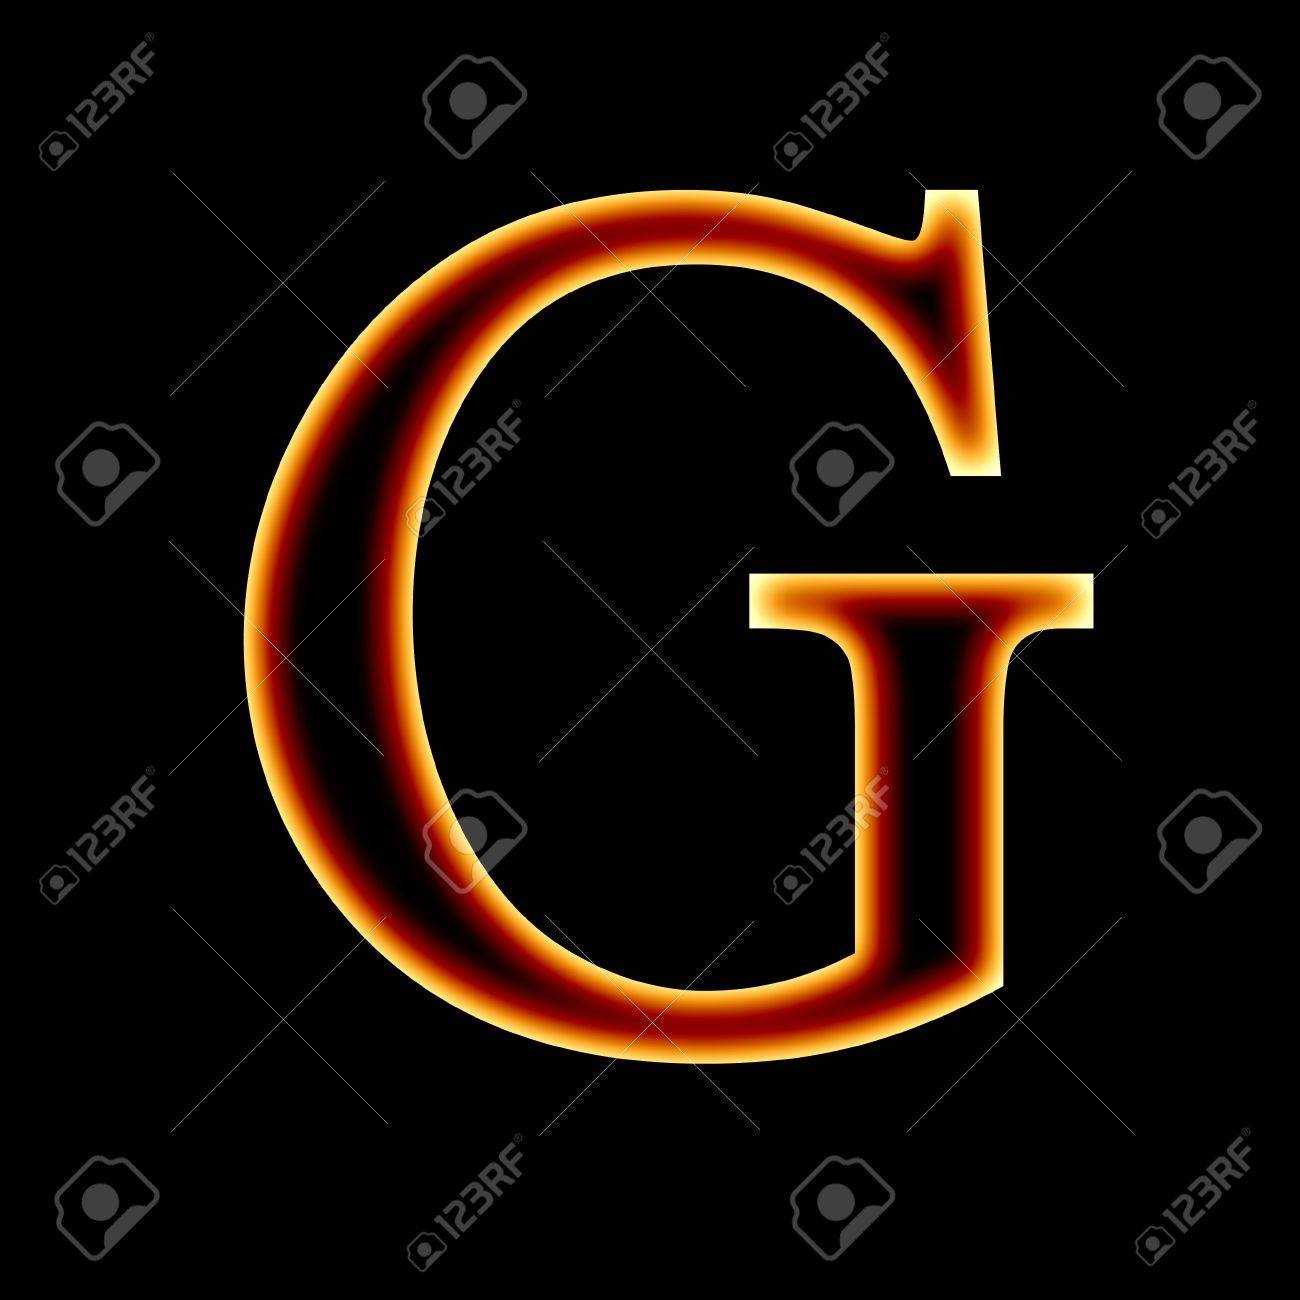 Fire Font Letter G On A Dark Background Stock Photo